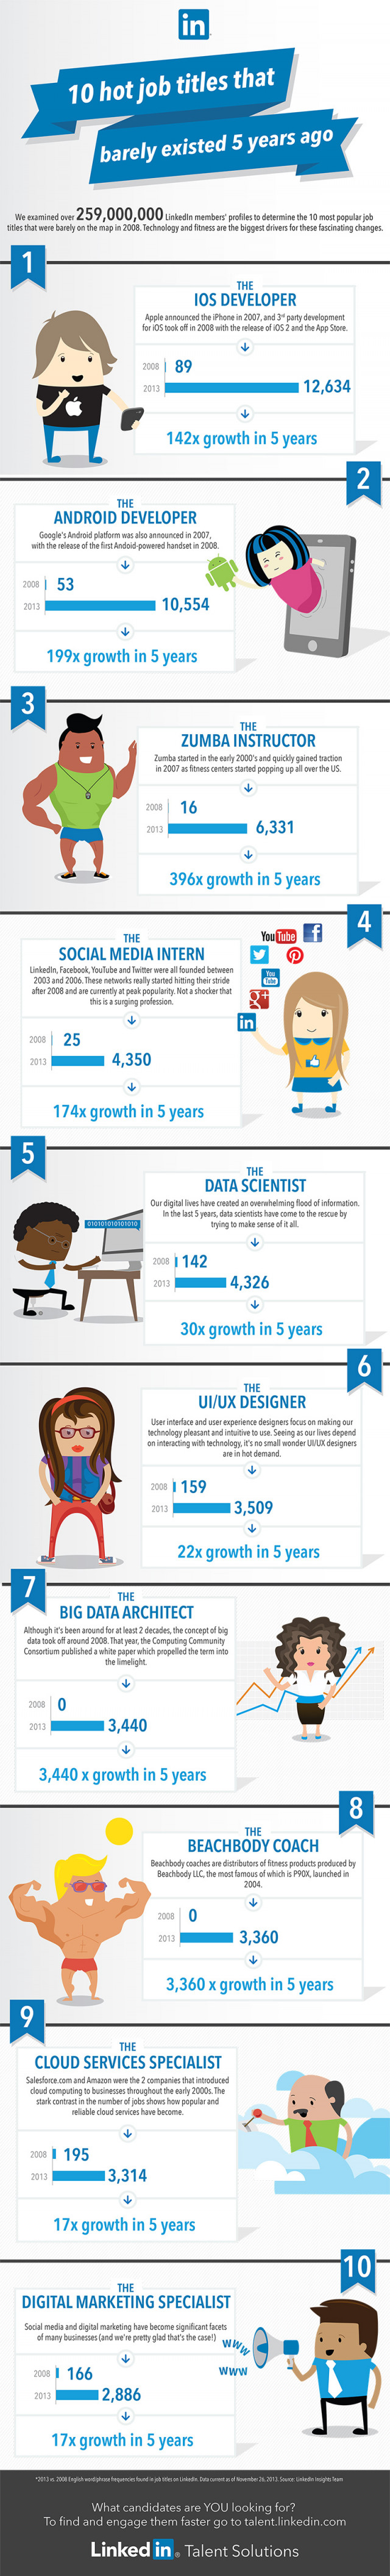 Top 10 Job Titles That Didn�t Exist 5 Years Ago